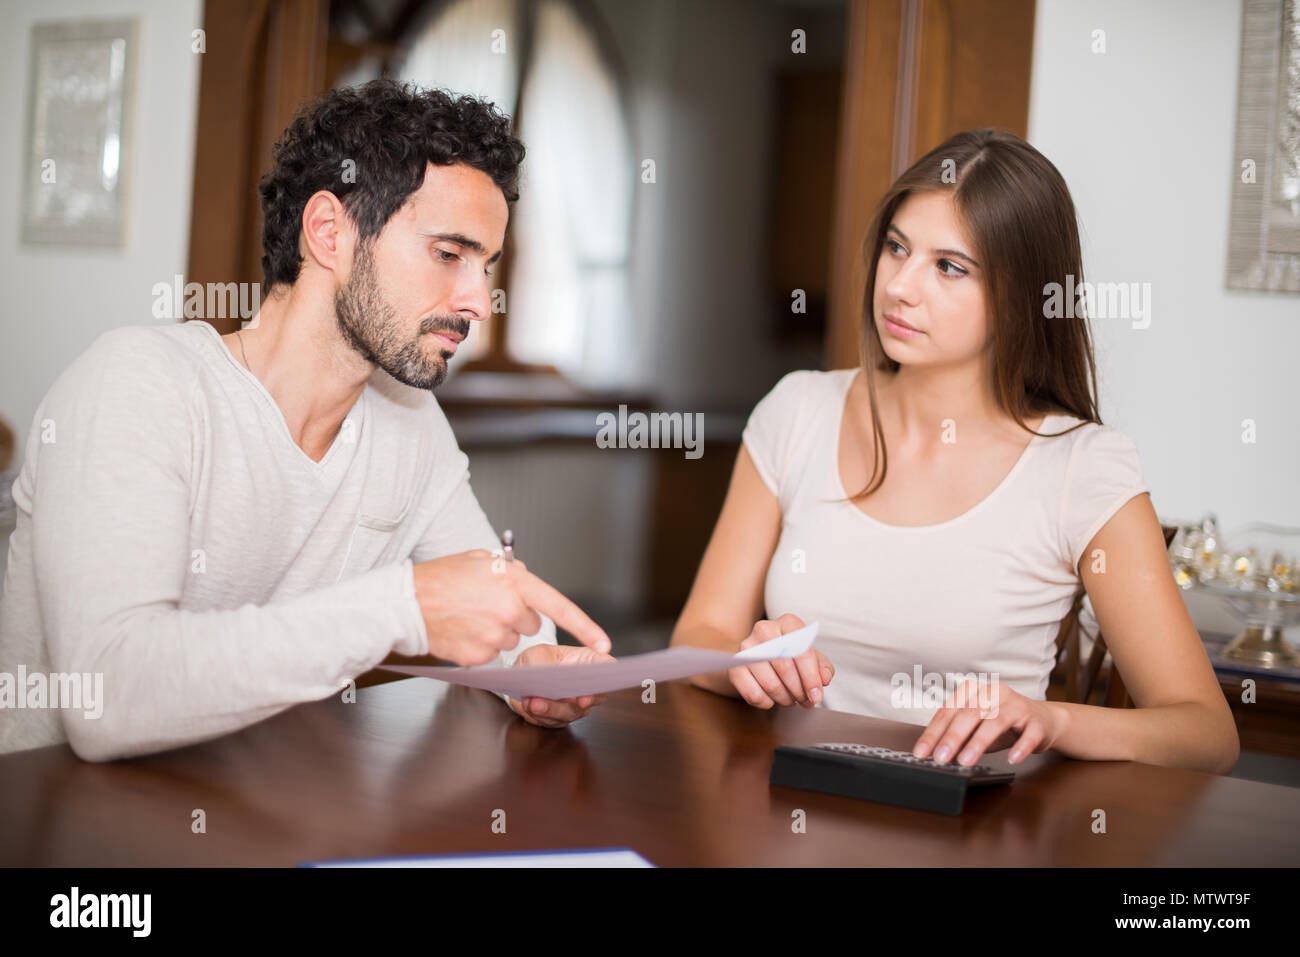 Couple calculating their expenses together Stock Photo